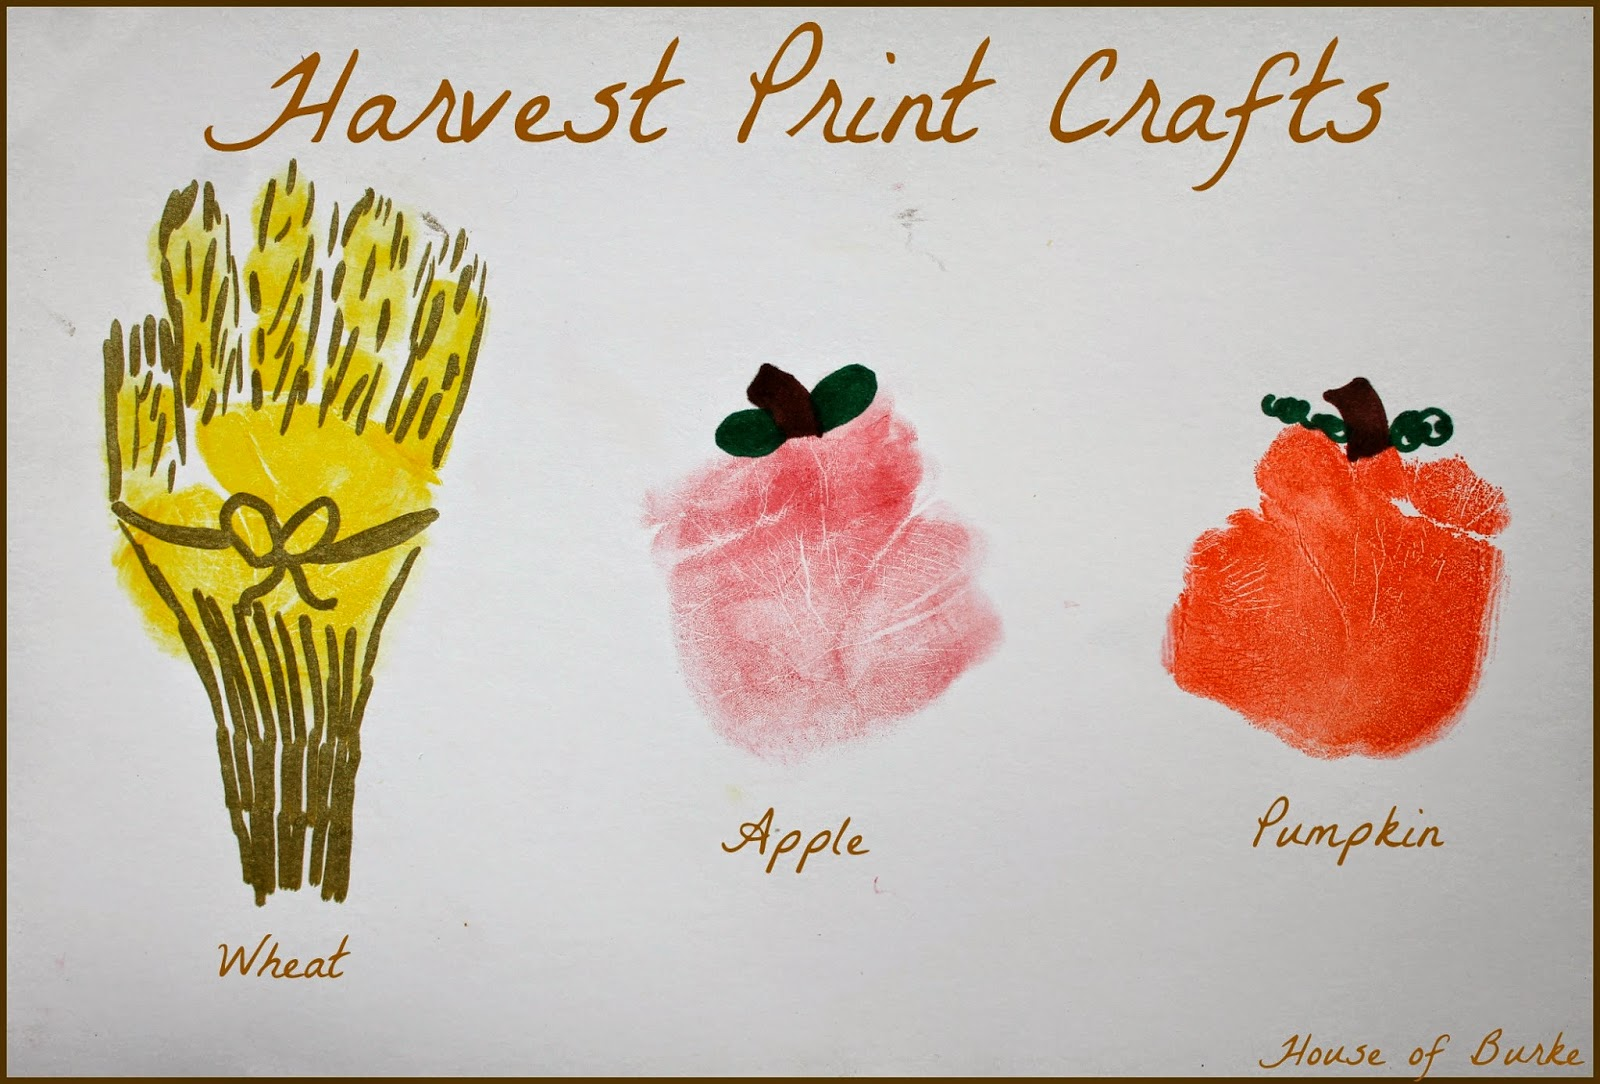 harvest arts and crafts ideas house of burke harvest print crafts 6696